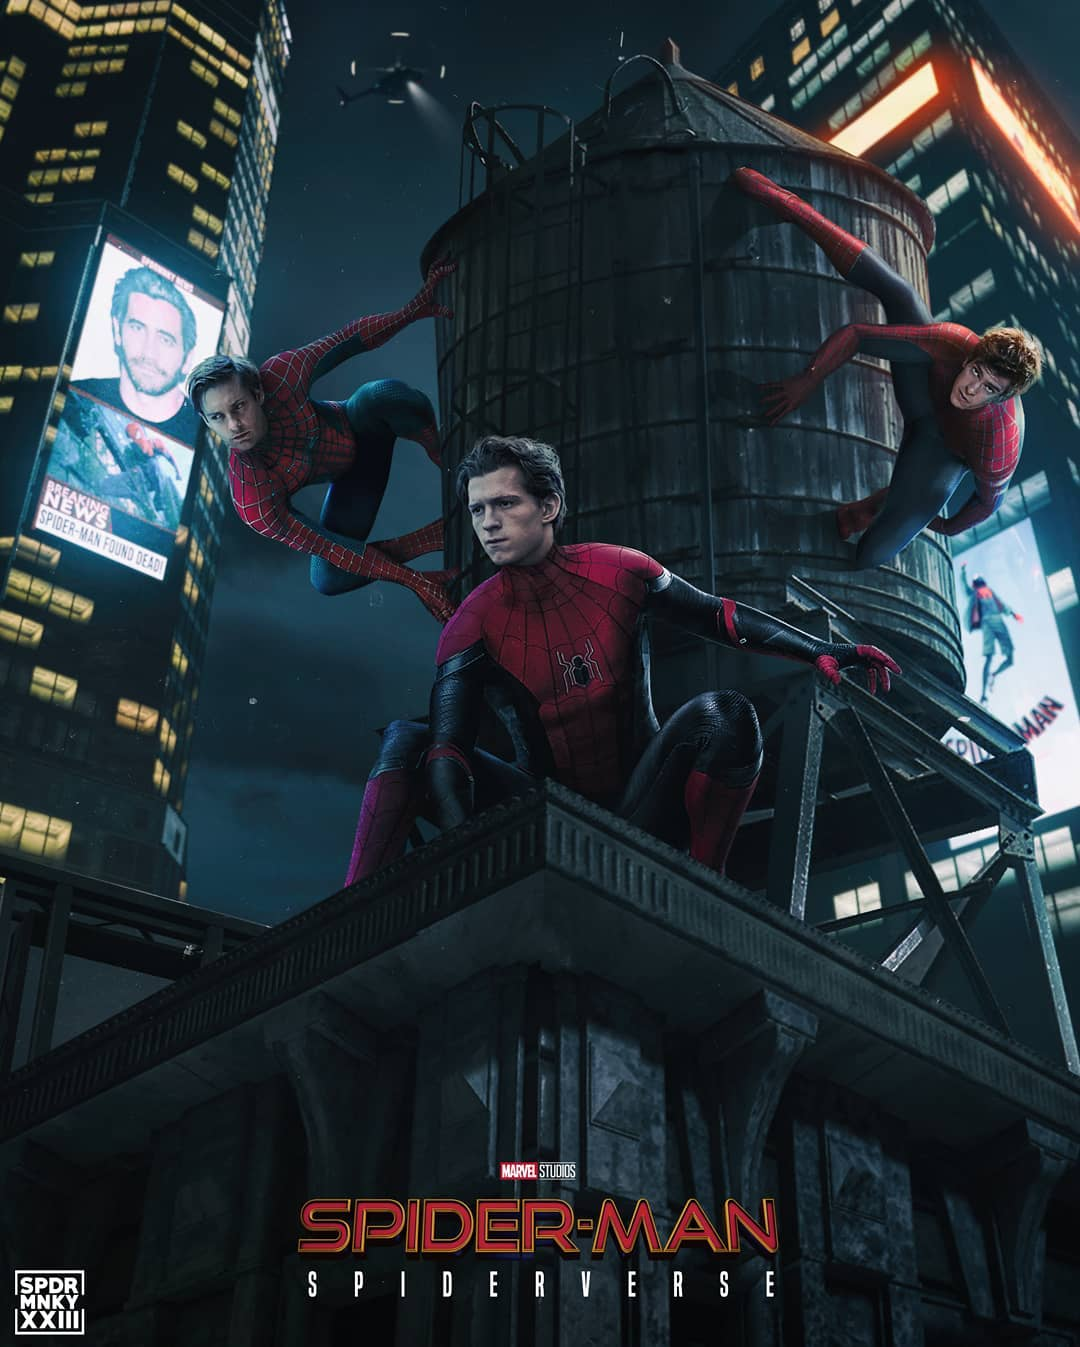 'Spider-Man' takes local box office by storm